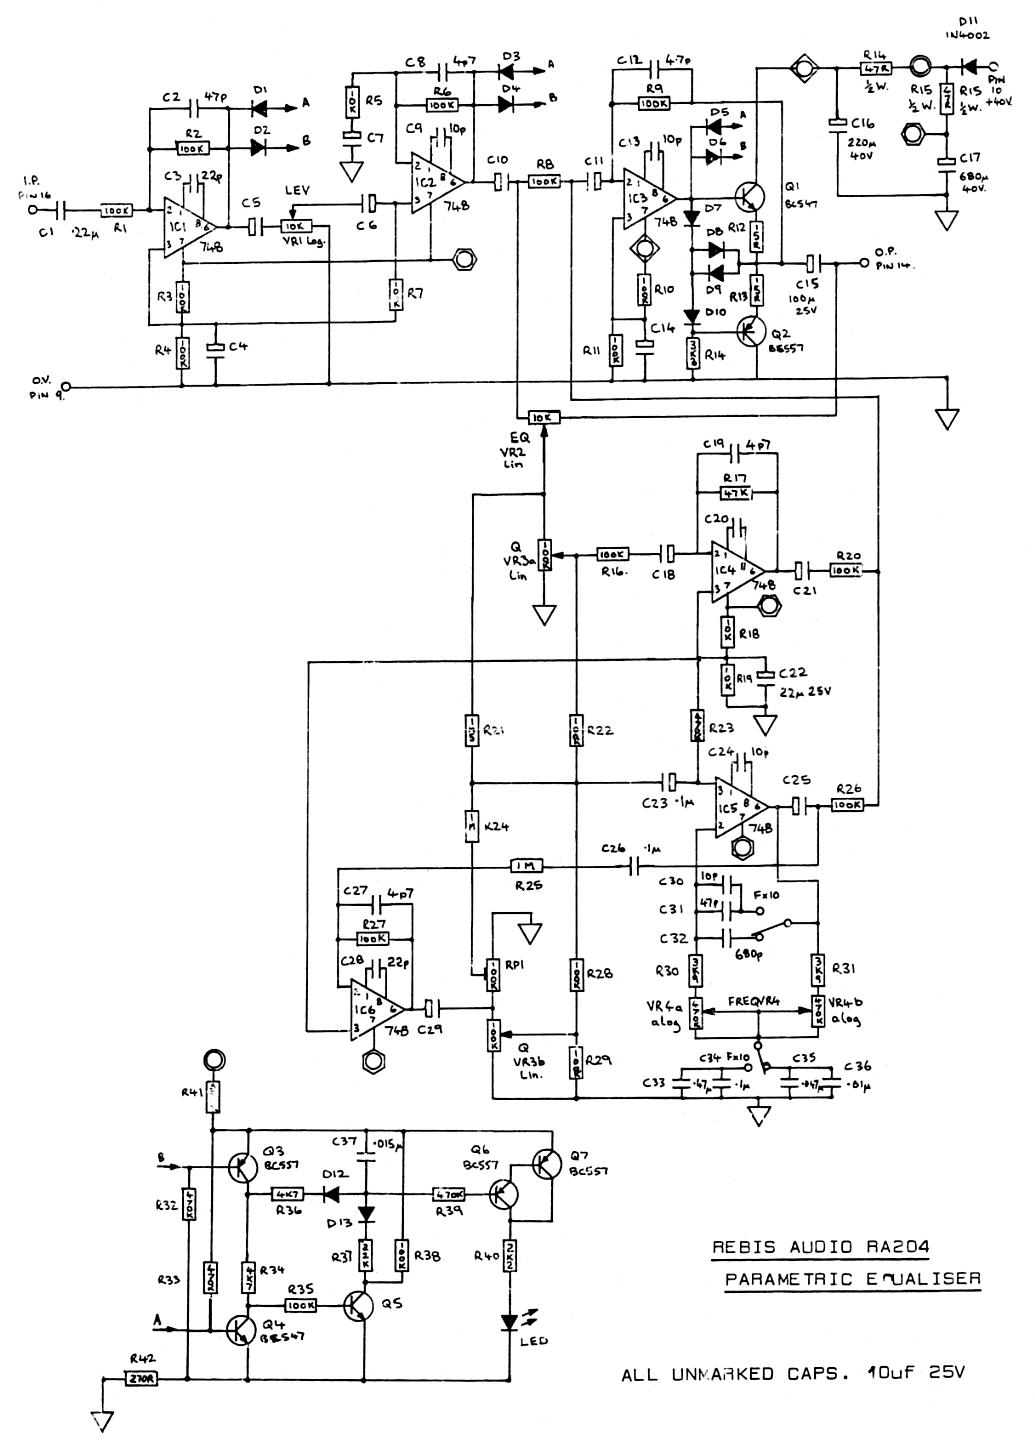 rebis audio ra204 parametric eq cct circuit dia's fordson dexta wiring diagram at edmiracle.co